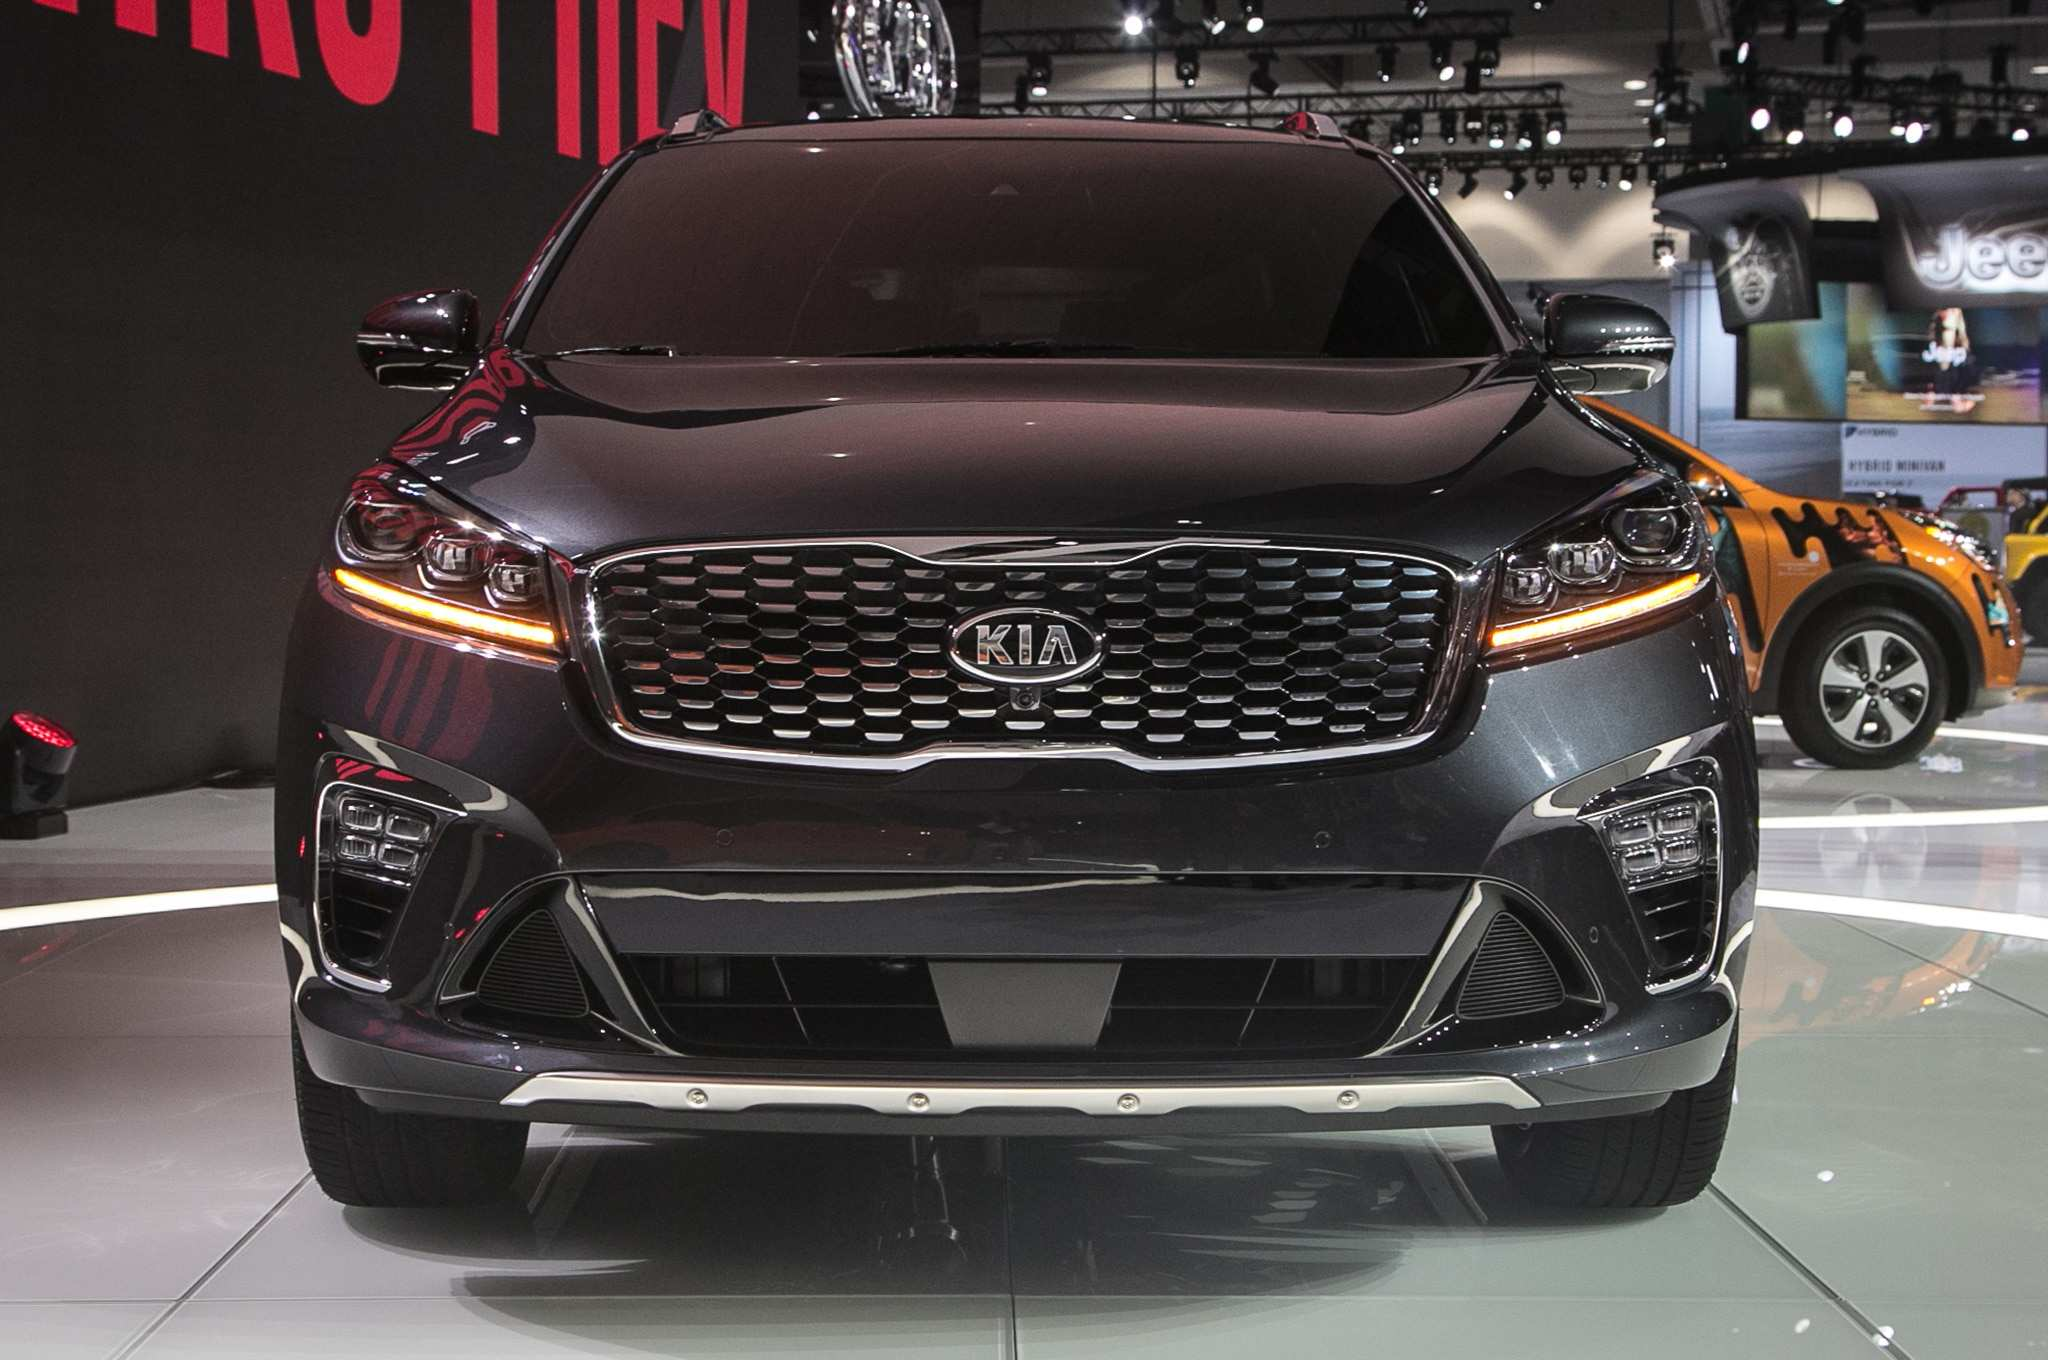 81 A Kia Lineup 2019 Engine